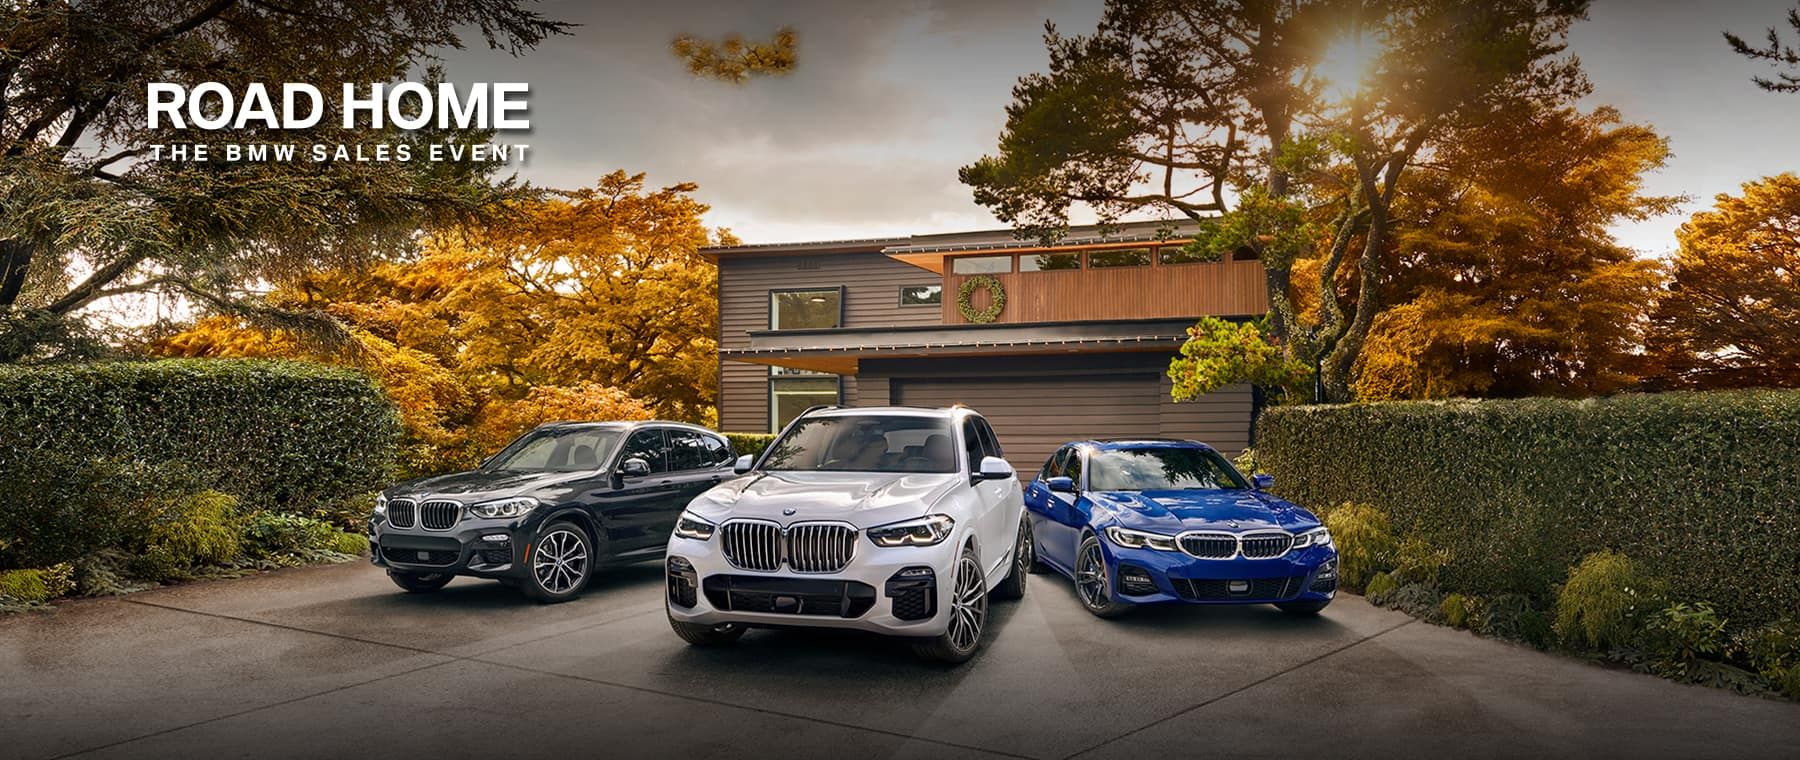 BMW Of North Haven Road Home Sales Event 2019